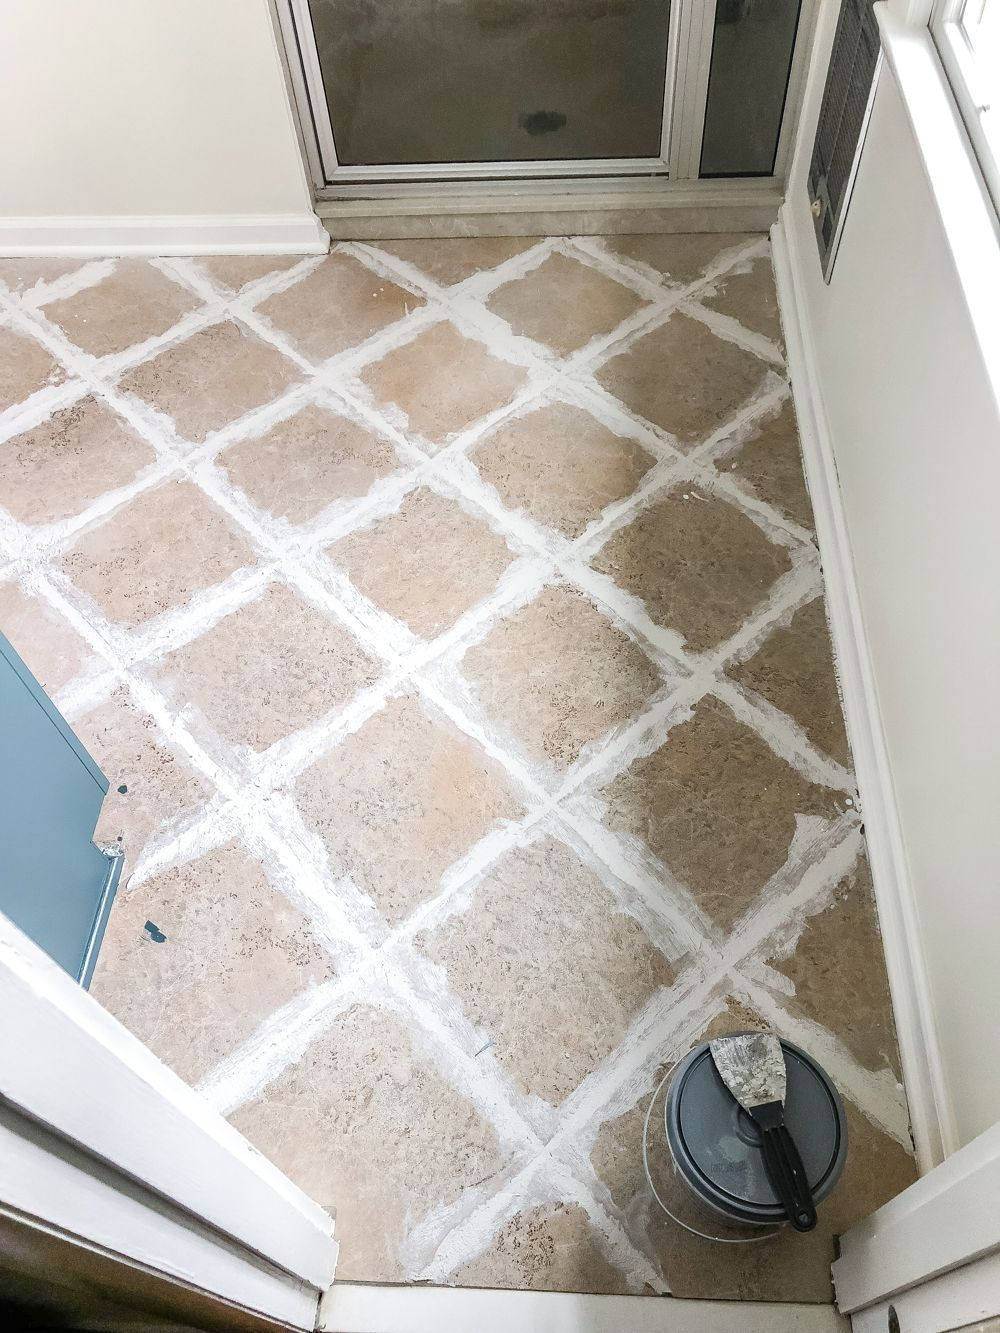 How To Install Sheet Vinyl Flooring Over Old Tile Fill Grout Lines Contemporarybathroomvinylflooring Vinyl Flooring Flooring Vinyl Flooring Bathroom